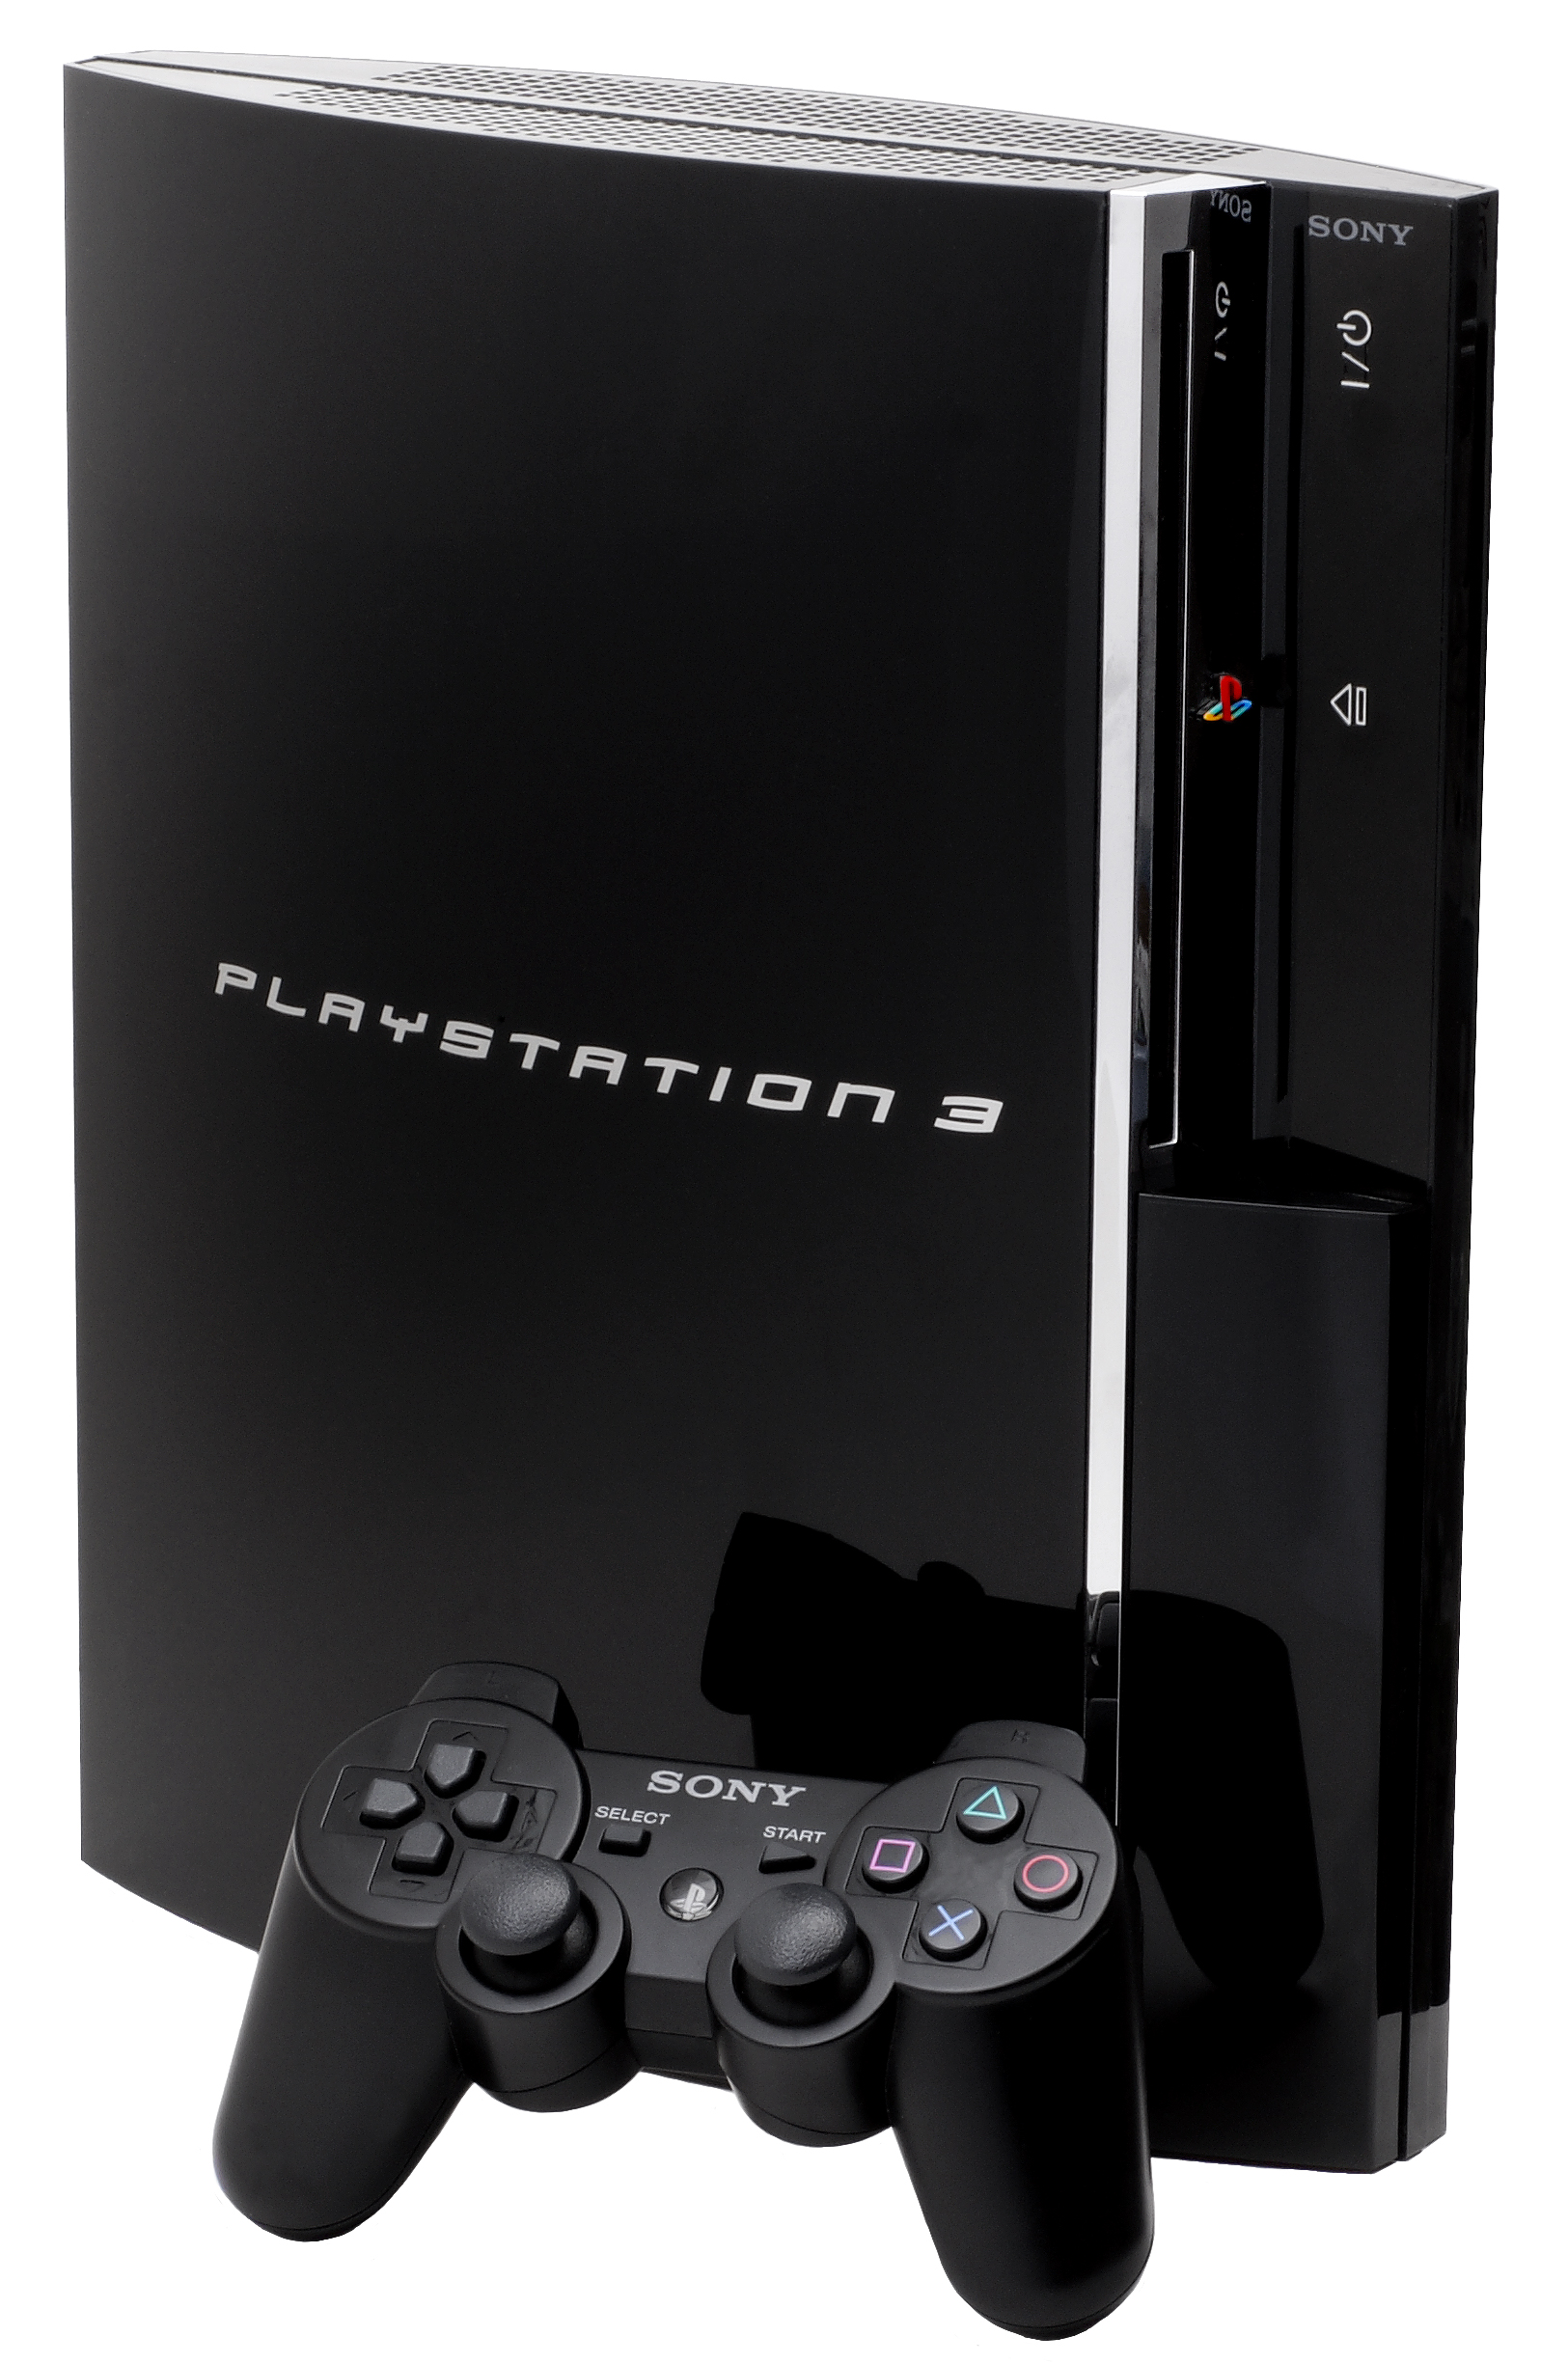 Sony Playstation 3 FAT 40 GB Original